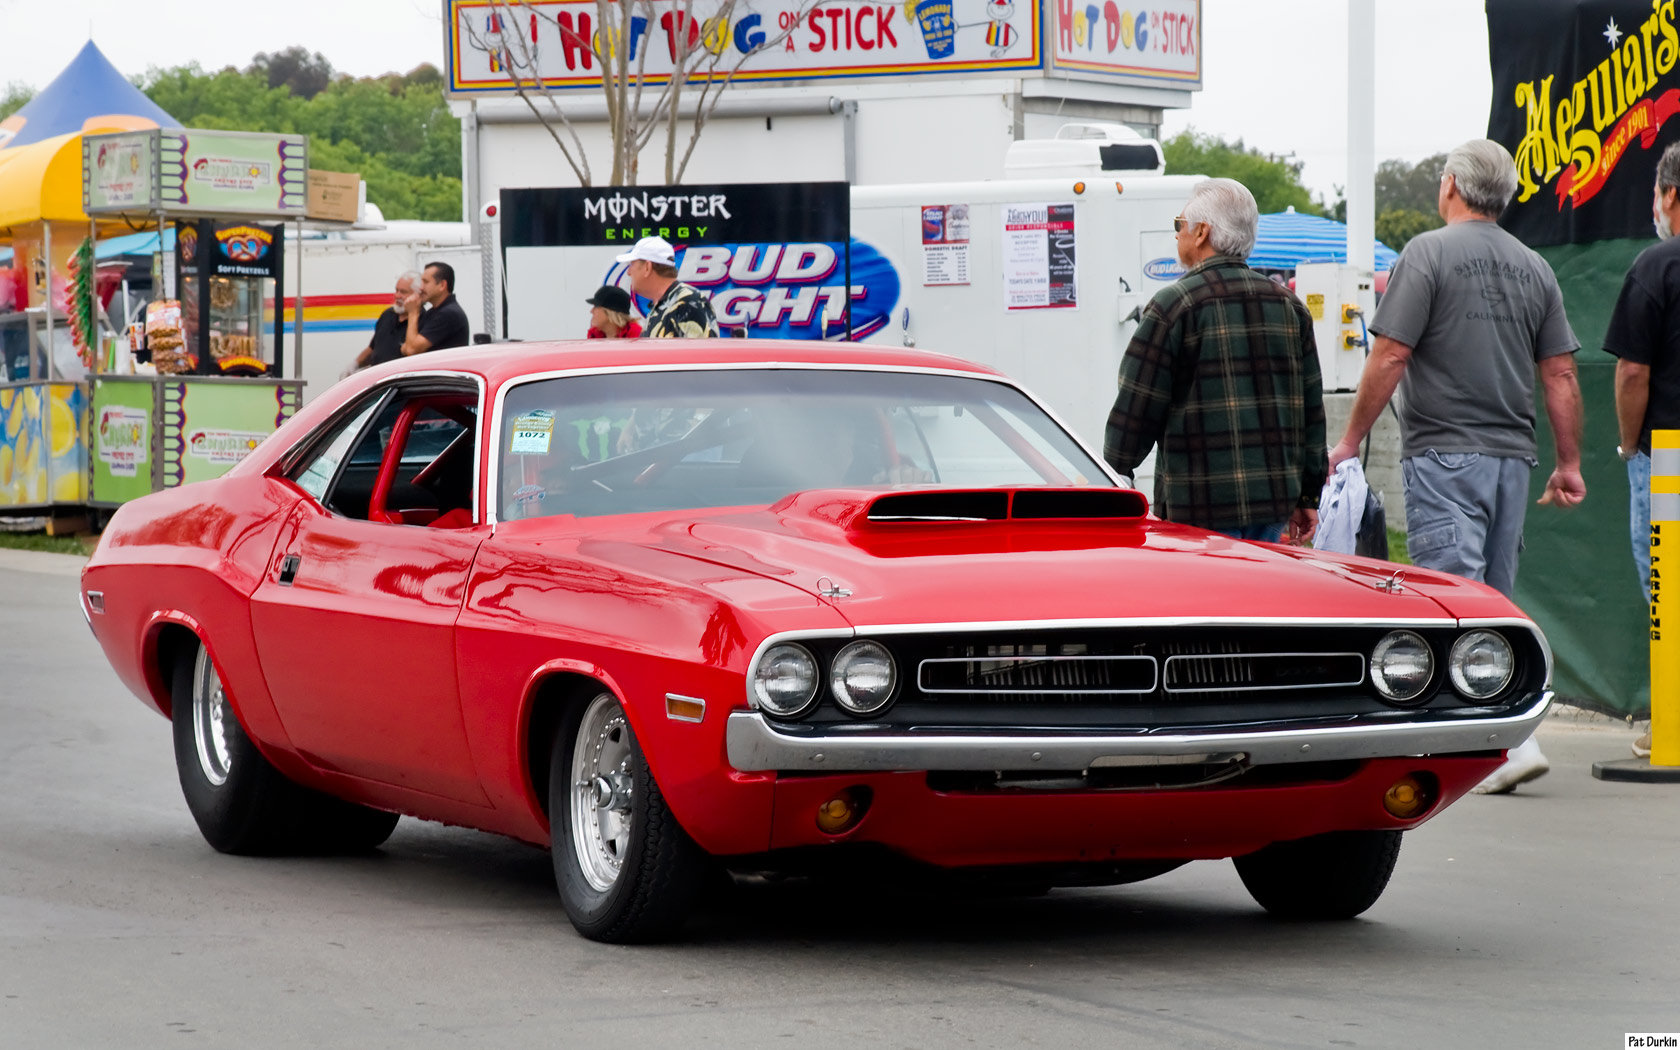 1971 Challenger has the correct stance to tear up the track